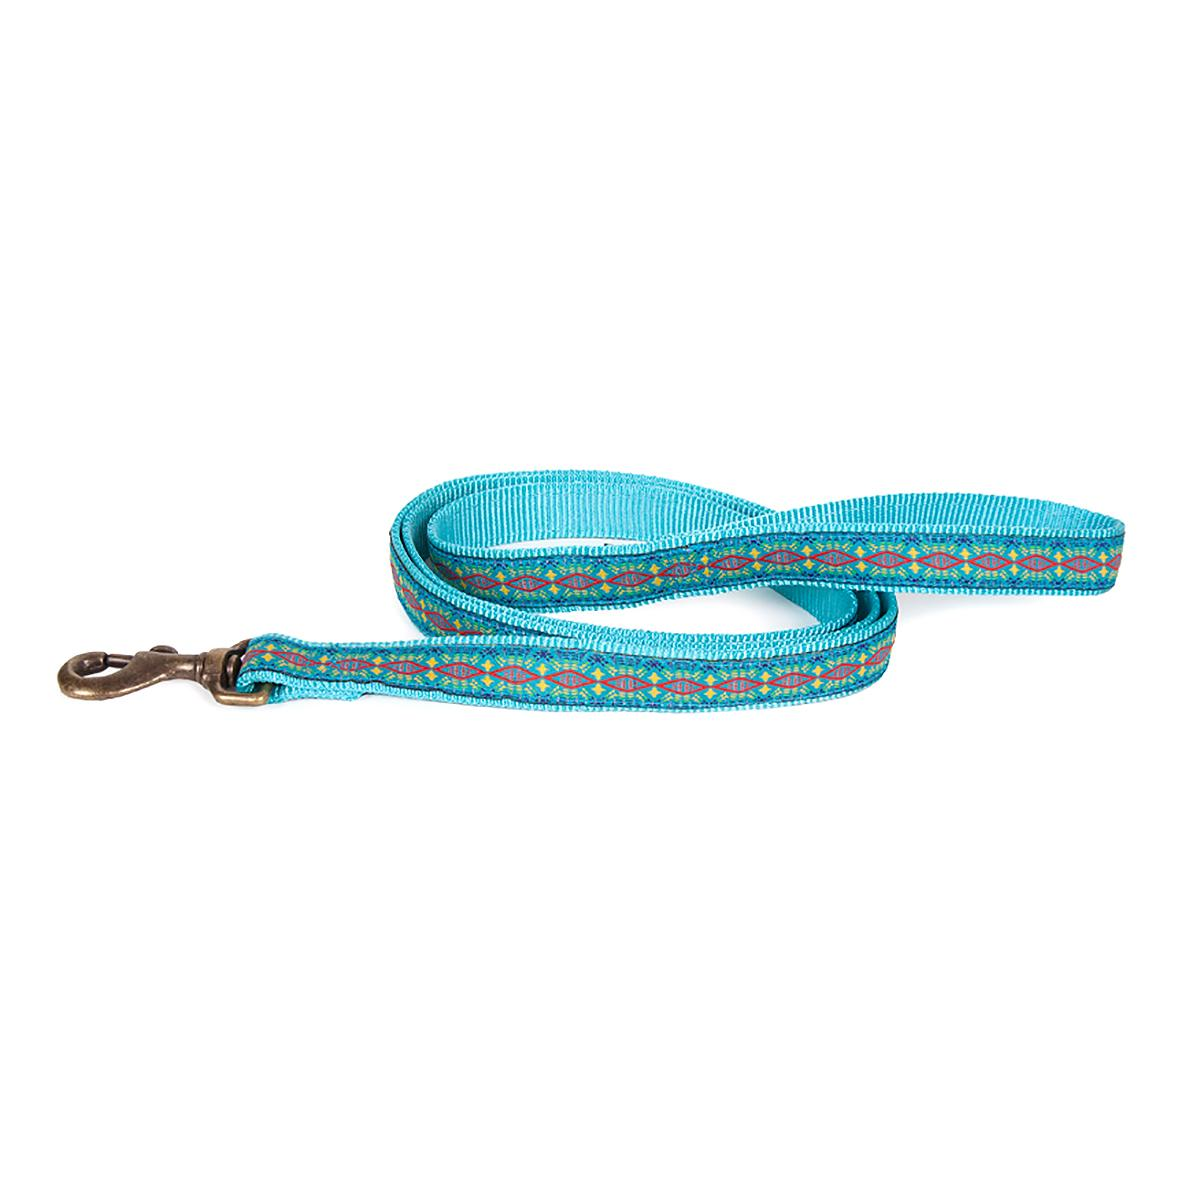 Pendleton Pet Diamond River Dog Leash - Turquoise